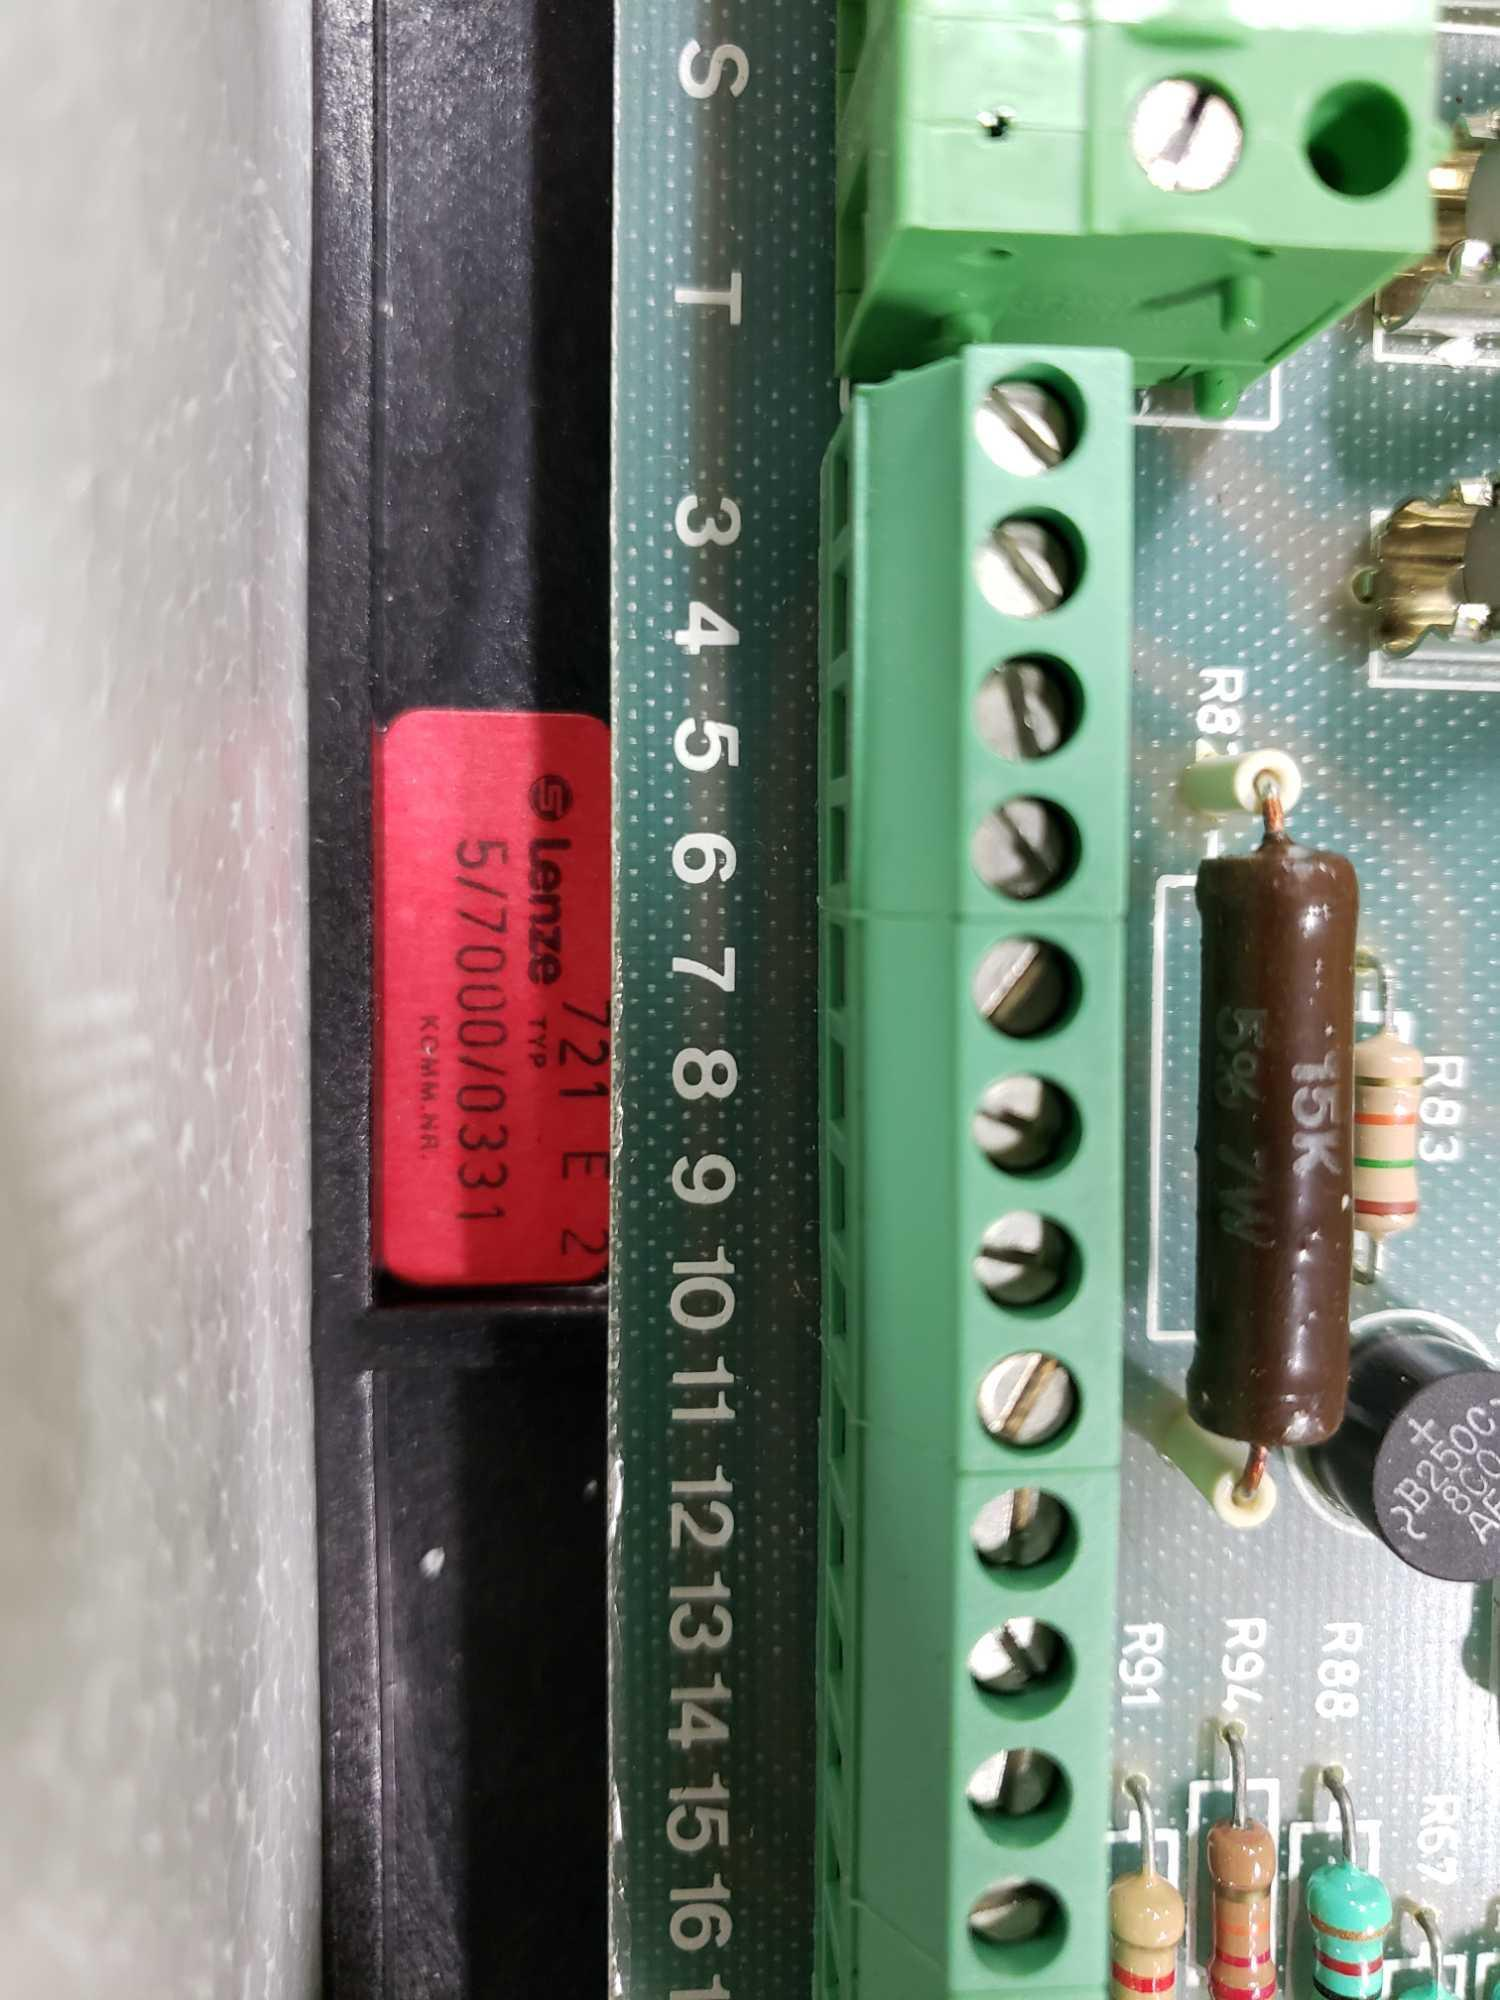 Stahlkontor control model 721-E2. New as pictured. - Image 2 of 4